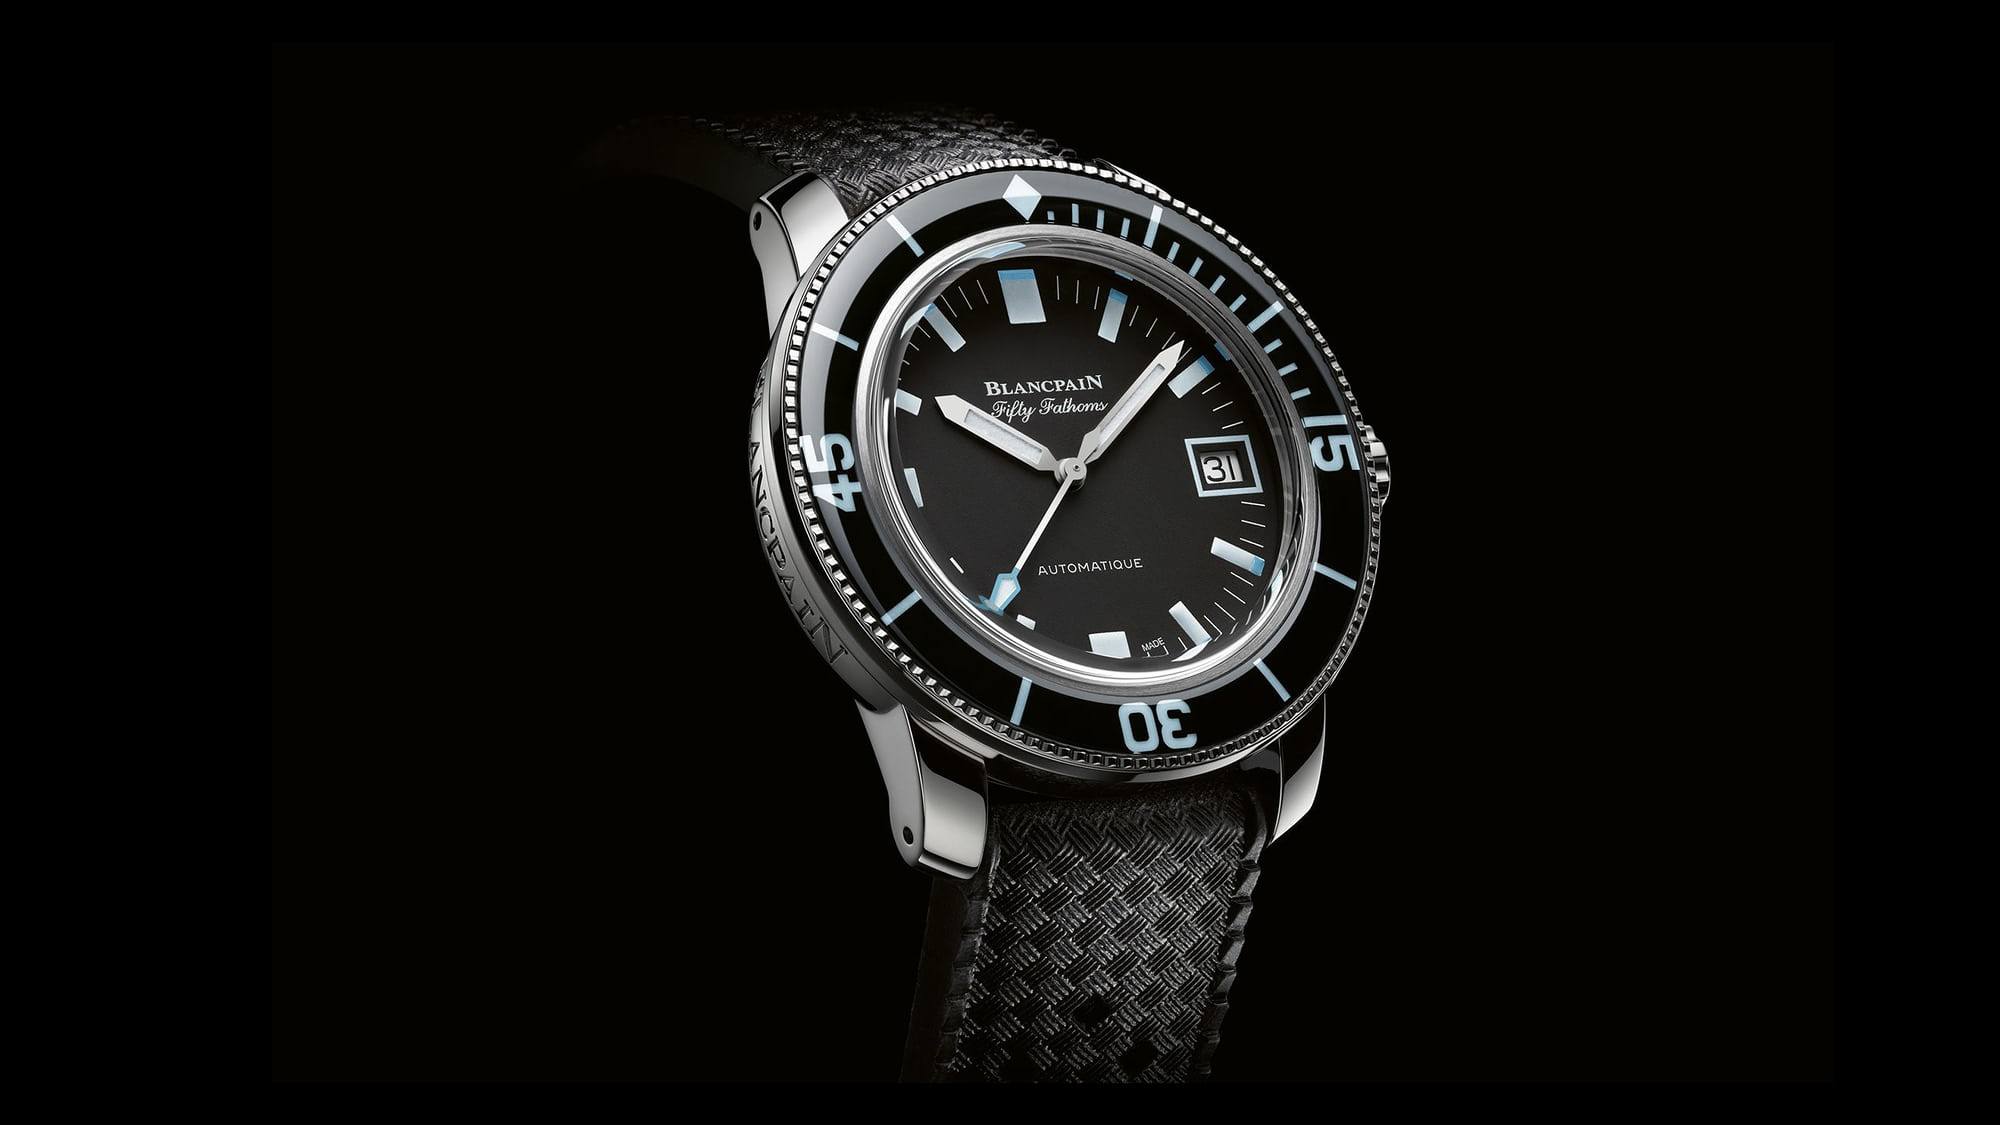 Introducing: The Blancpain Fifty Fathoms Barakuda Unique Piece For Only Watch 2019